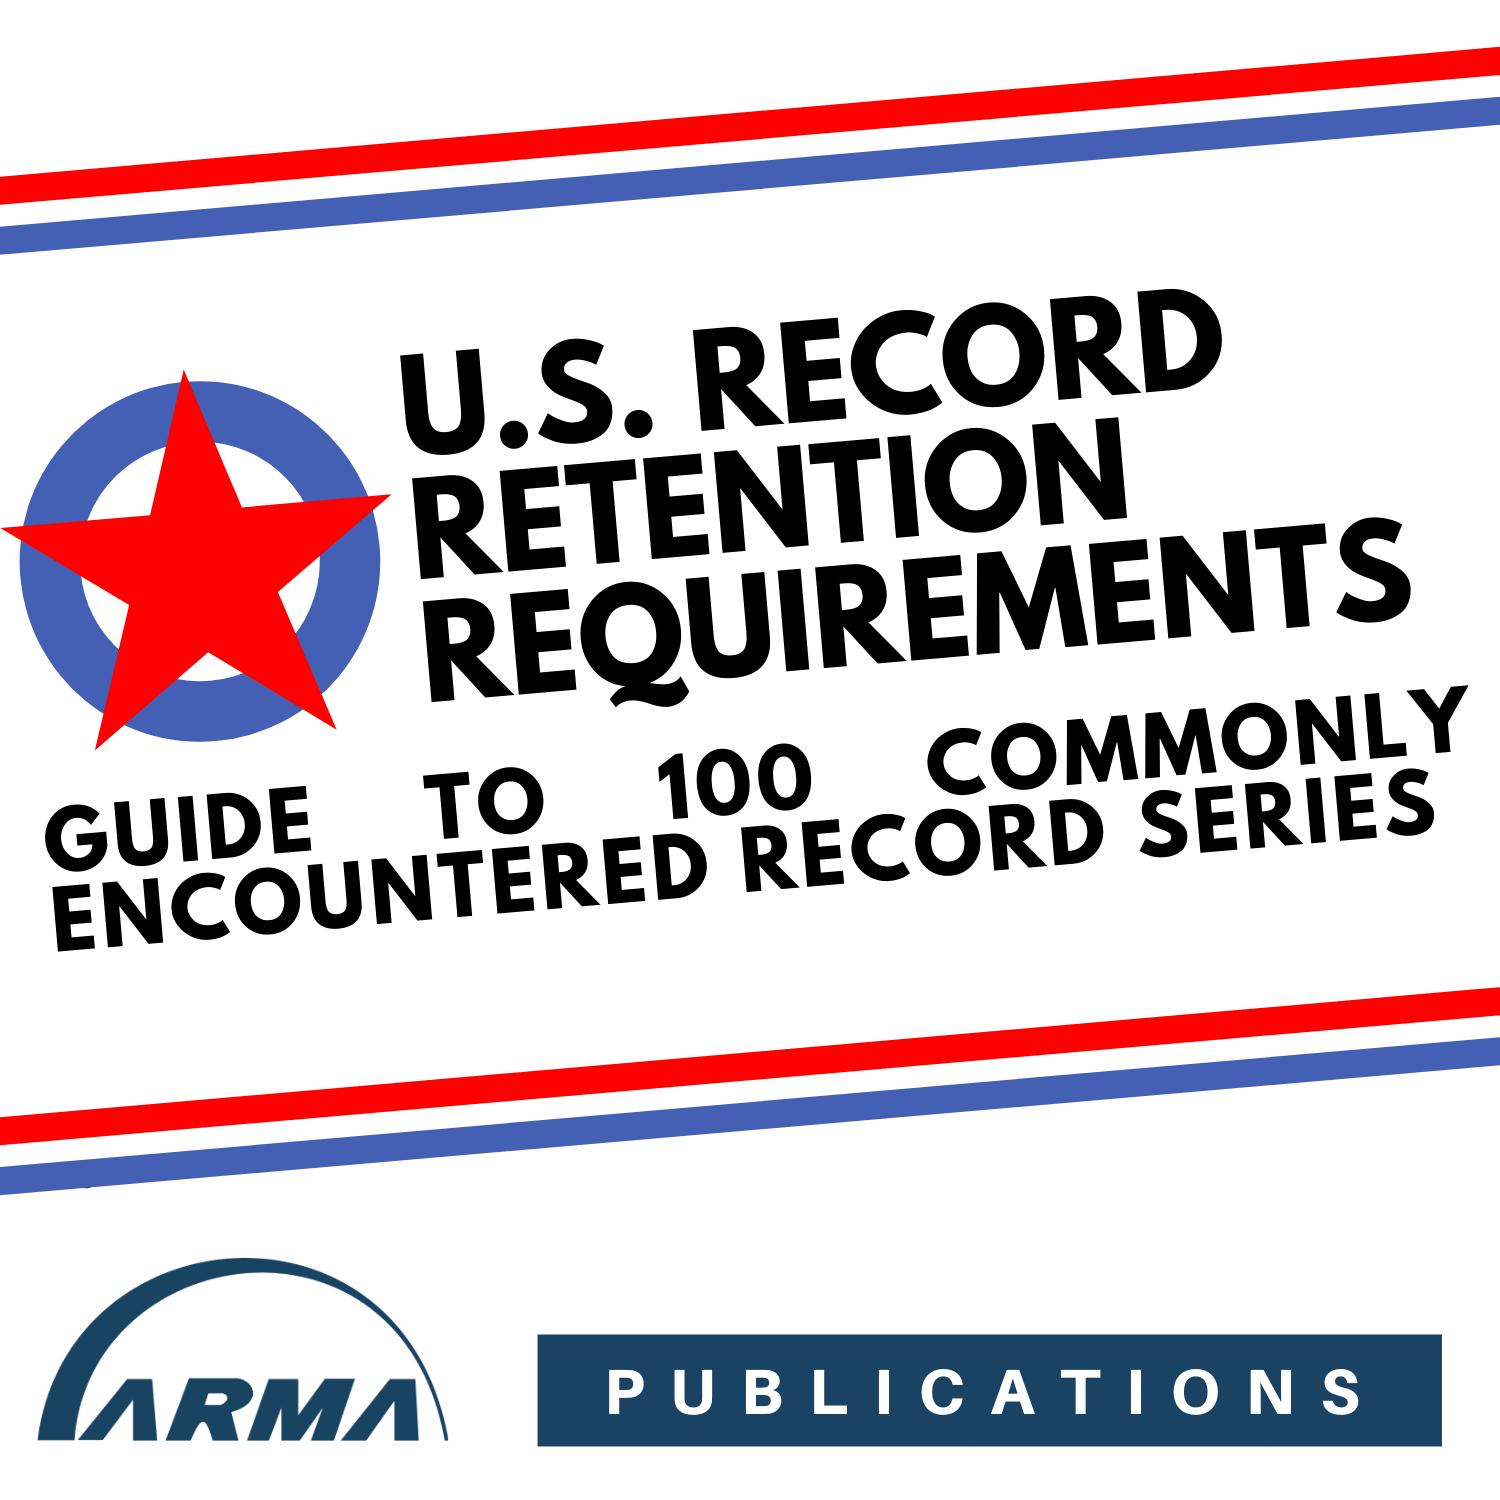 U.S. Record Retention Requirements: Guide to 100 Commonly Encountered Record Series